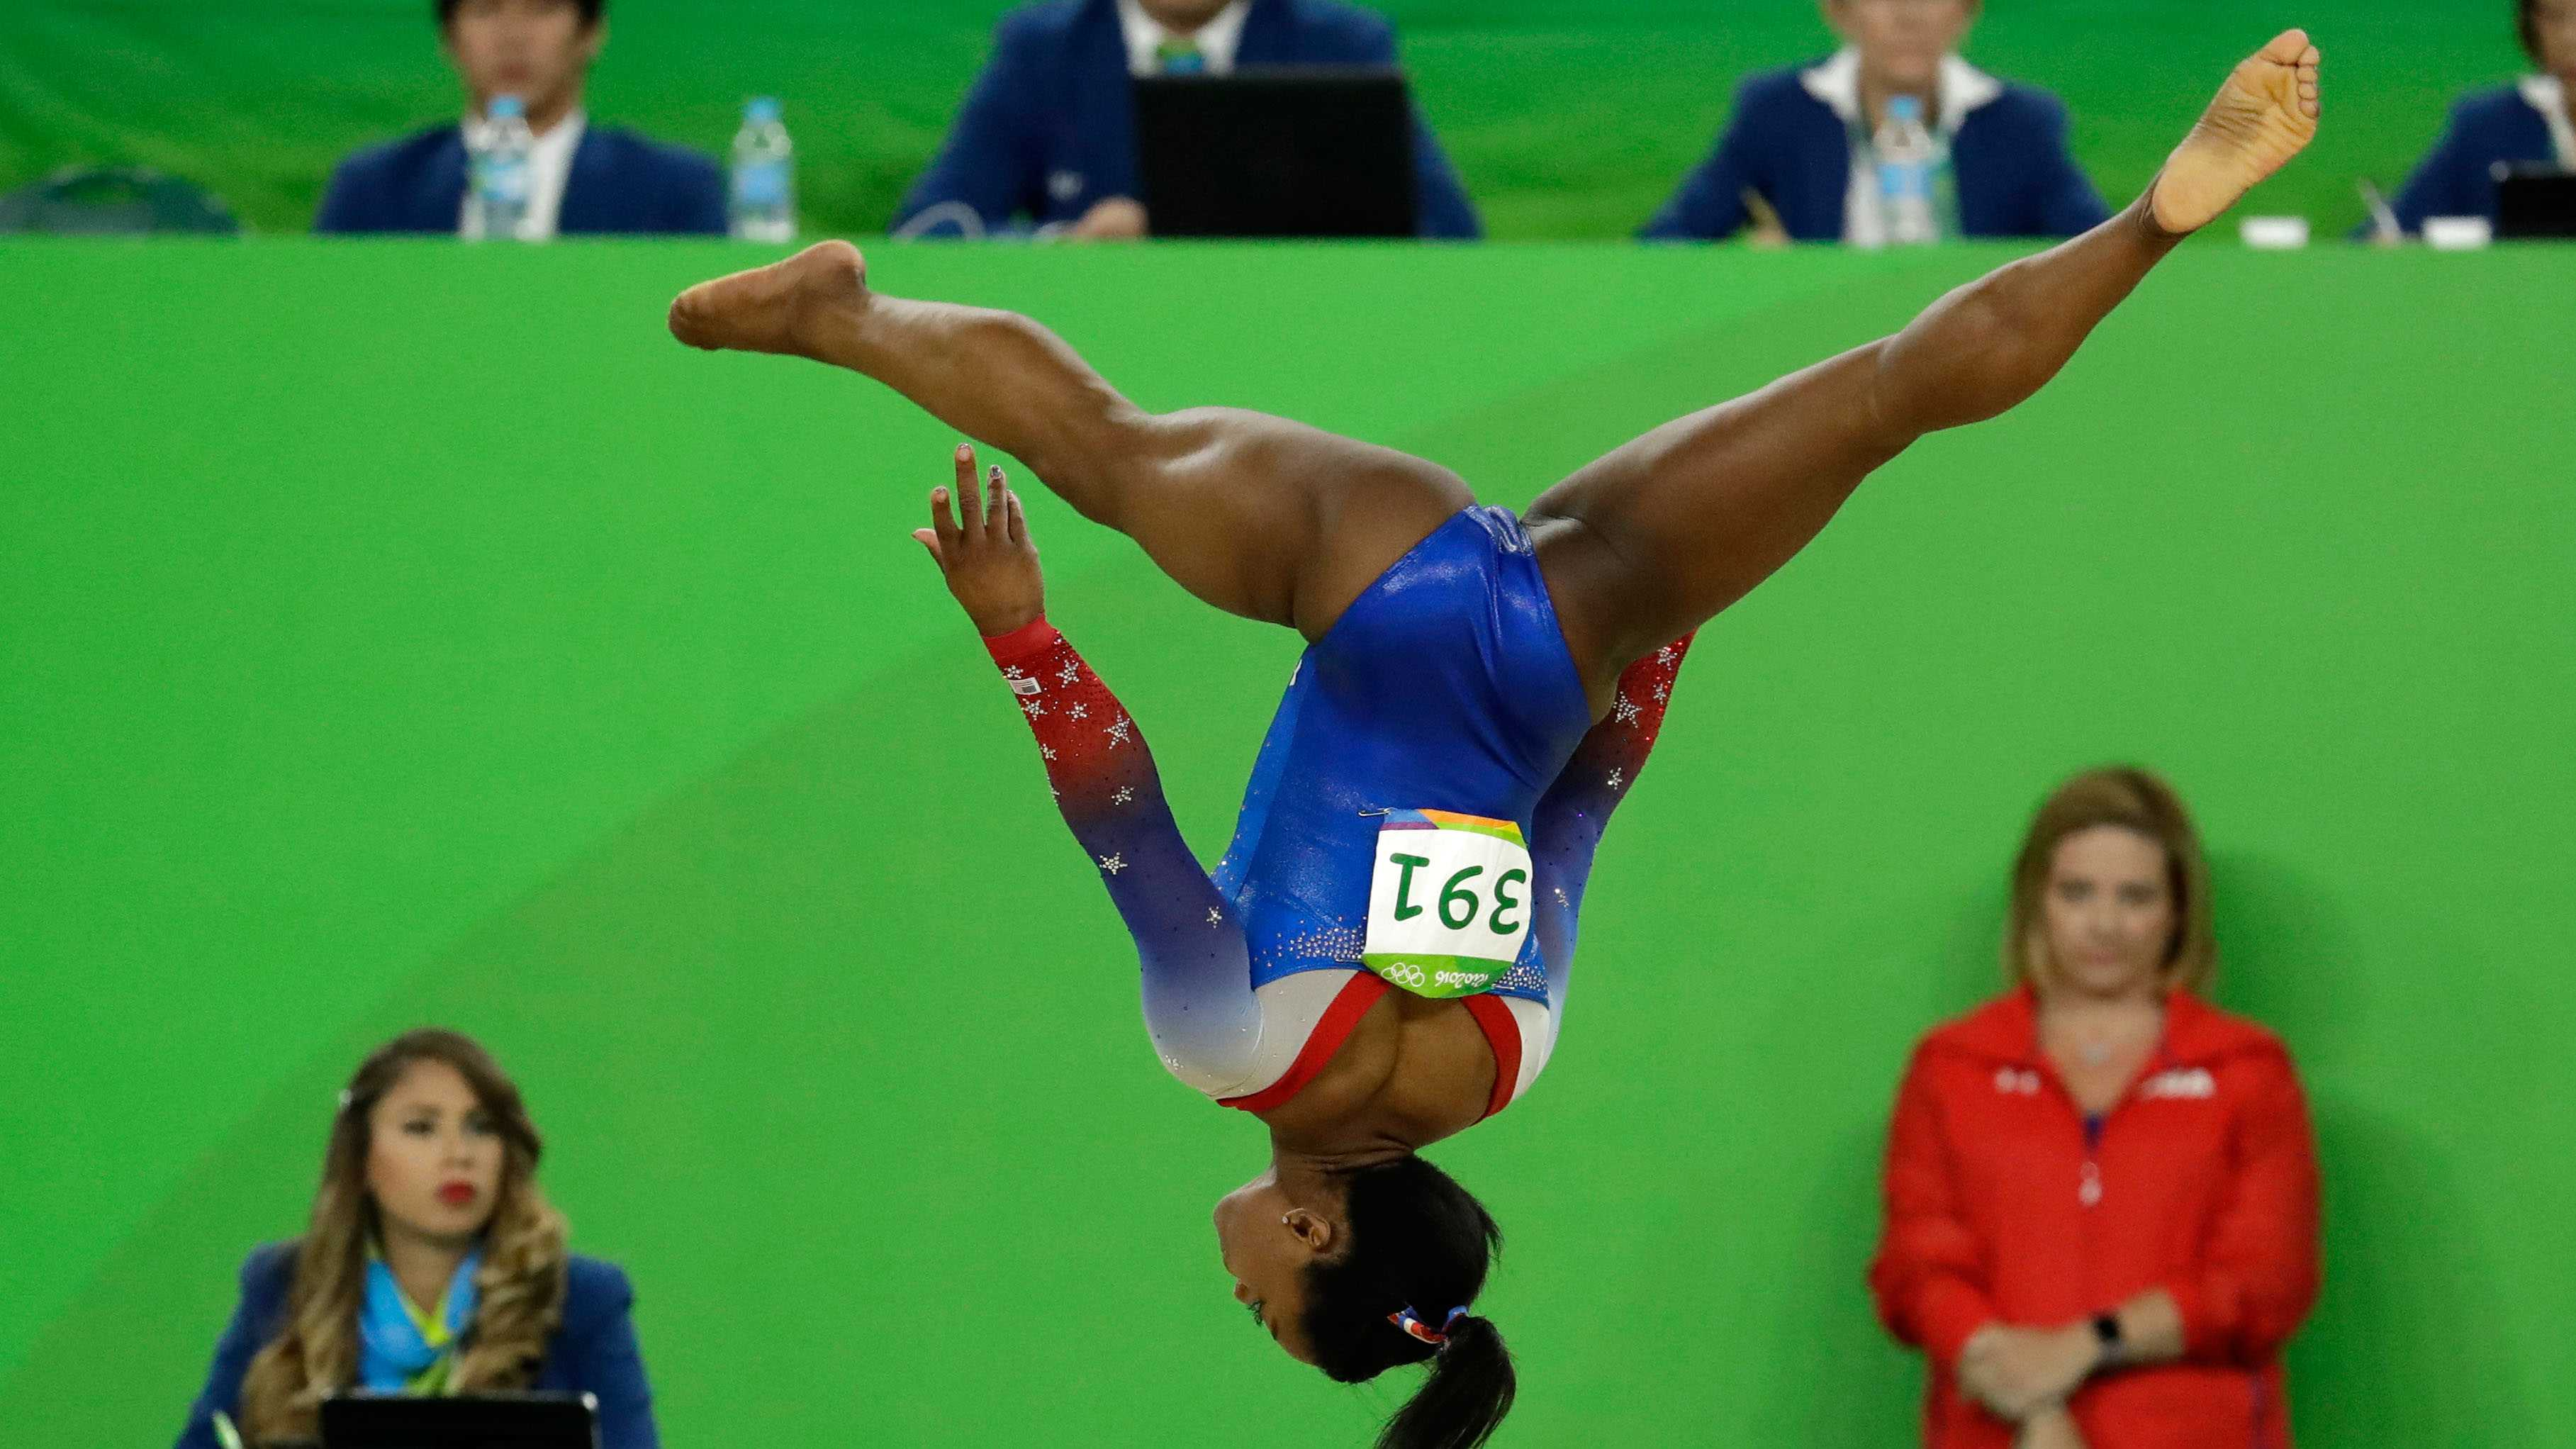 United States' Simone Biles performs on the floor during the artistic gymnastics women's apparatus final.